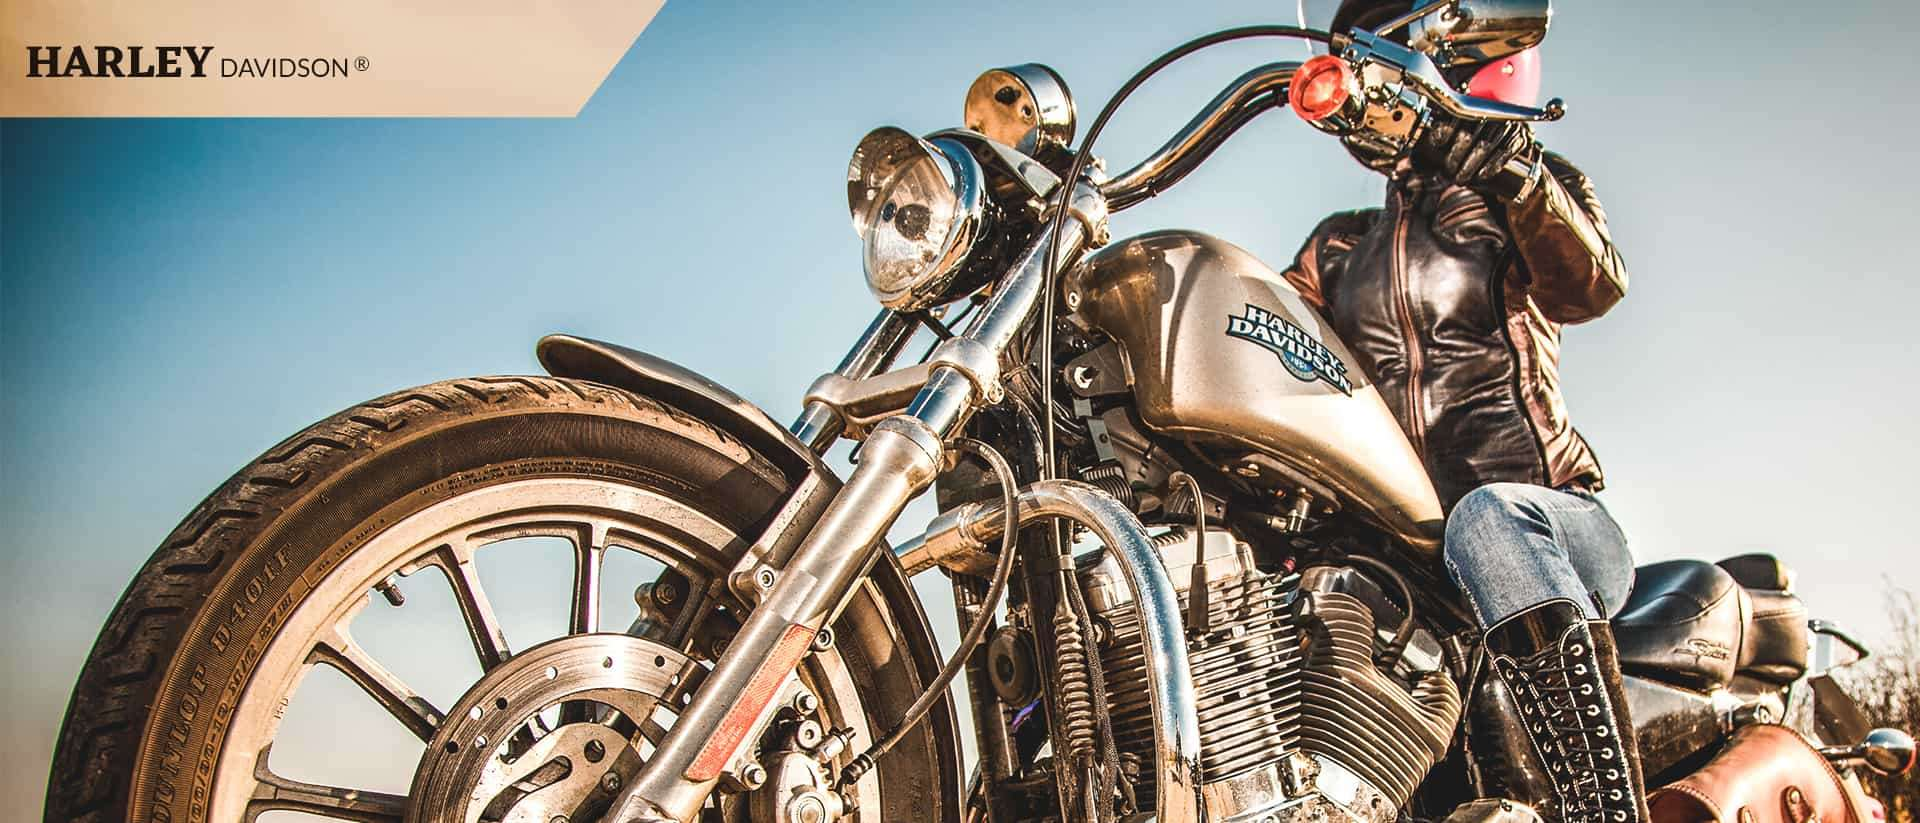 Shop for Harley-Davidson® Motorcycles at Cycle Stop, Inc. | Norristown, PA.